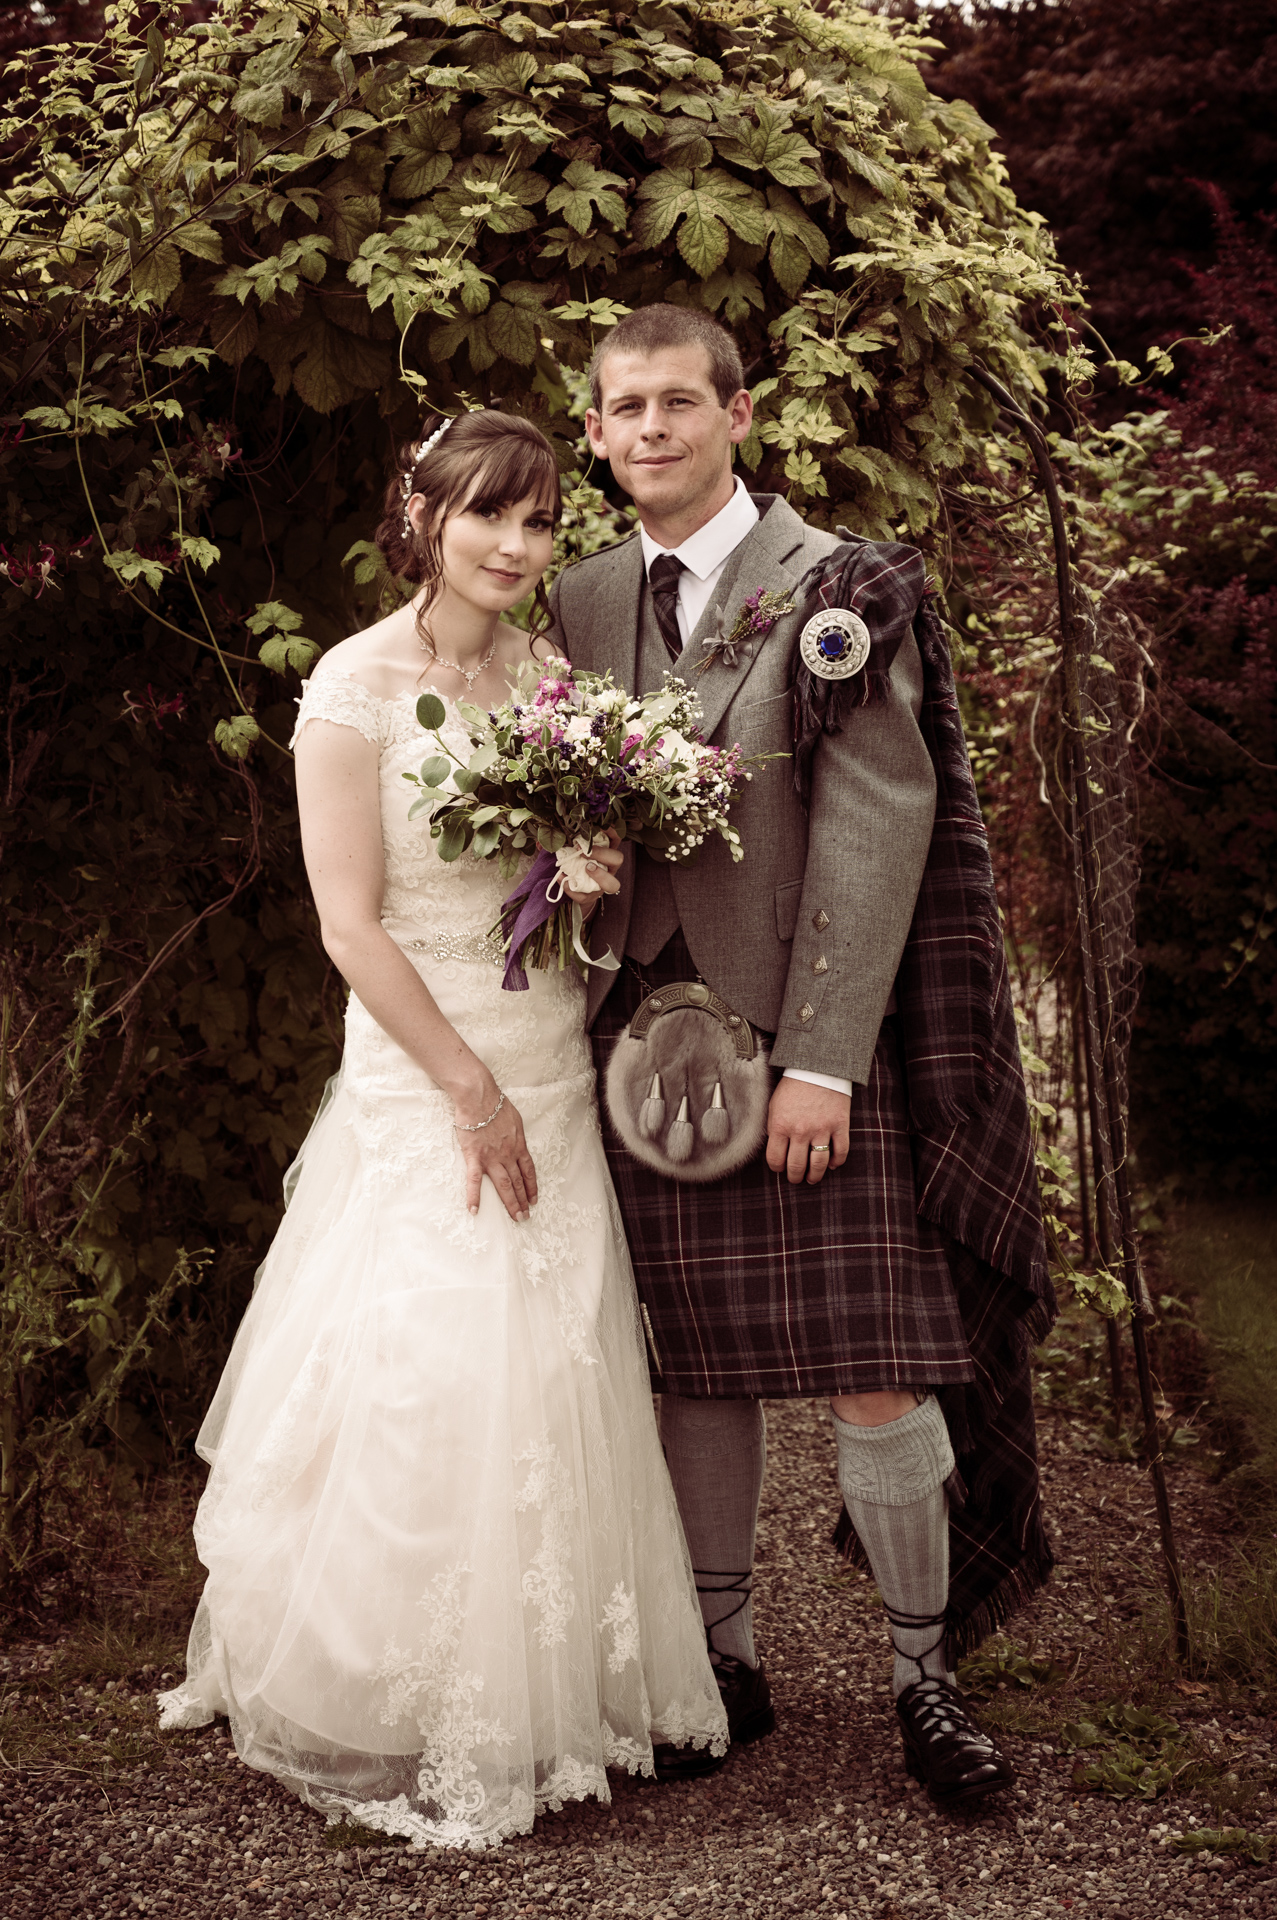 Jenna and Connor Wedding at Crieff Hydro